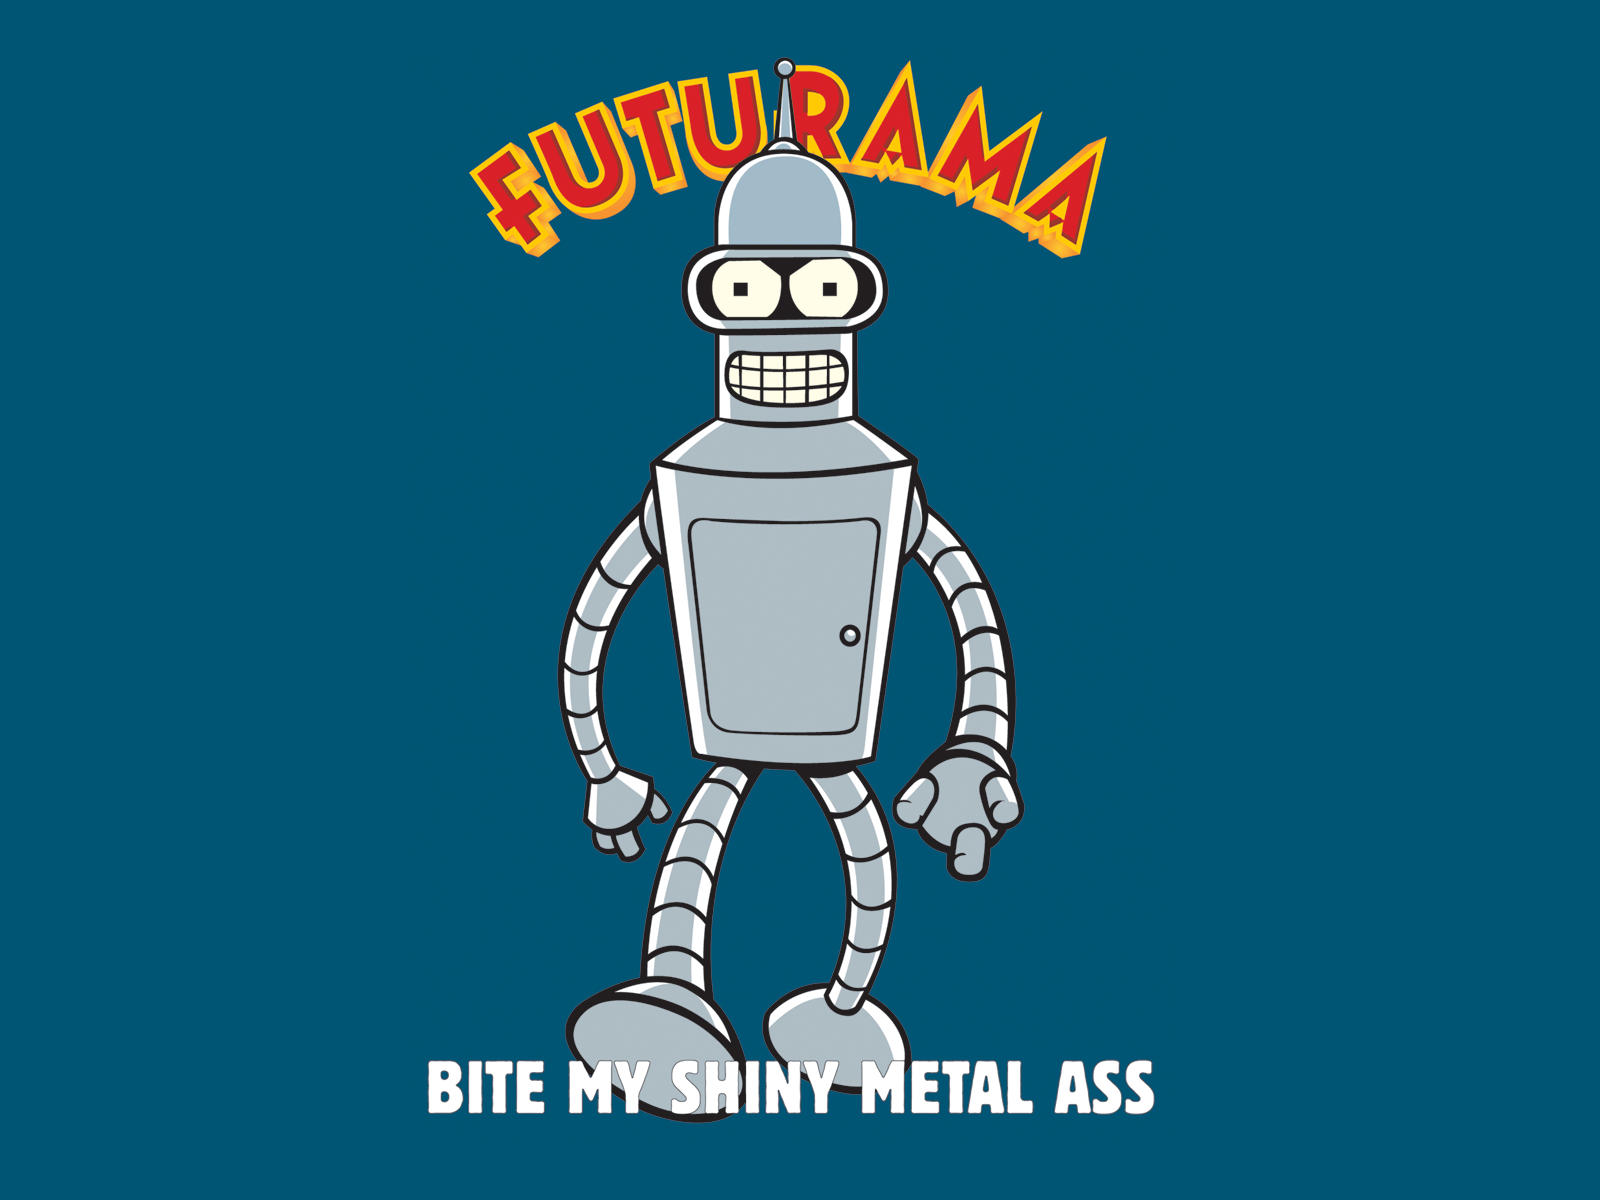 http://4.bp.blogspot.com/-UD7LovkCO2k/T2iQCEURwYI/AAAAAAAAA6k/FoH3GB_tRm4/s1600/Futurama_Bender_Funny_HD_Cartoon_Wallpaper.jpg